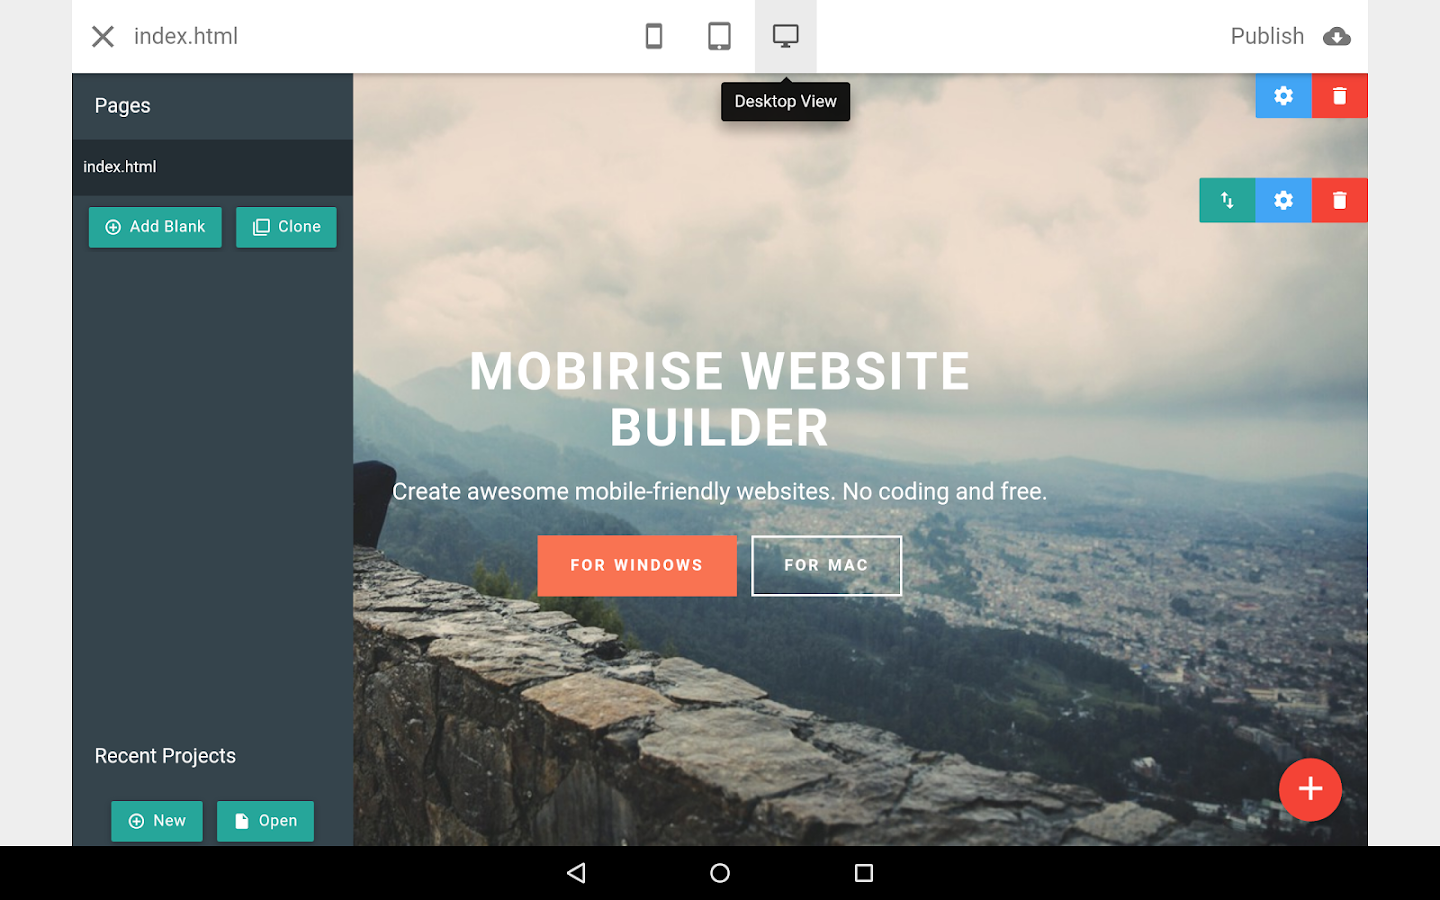 mobirise website builder android apps on google play